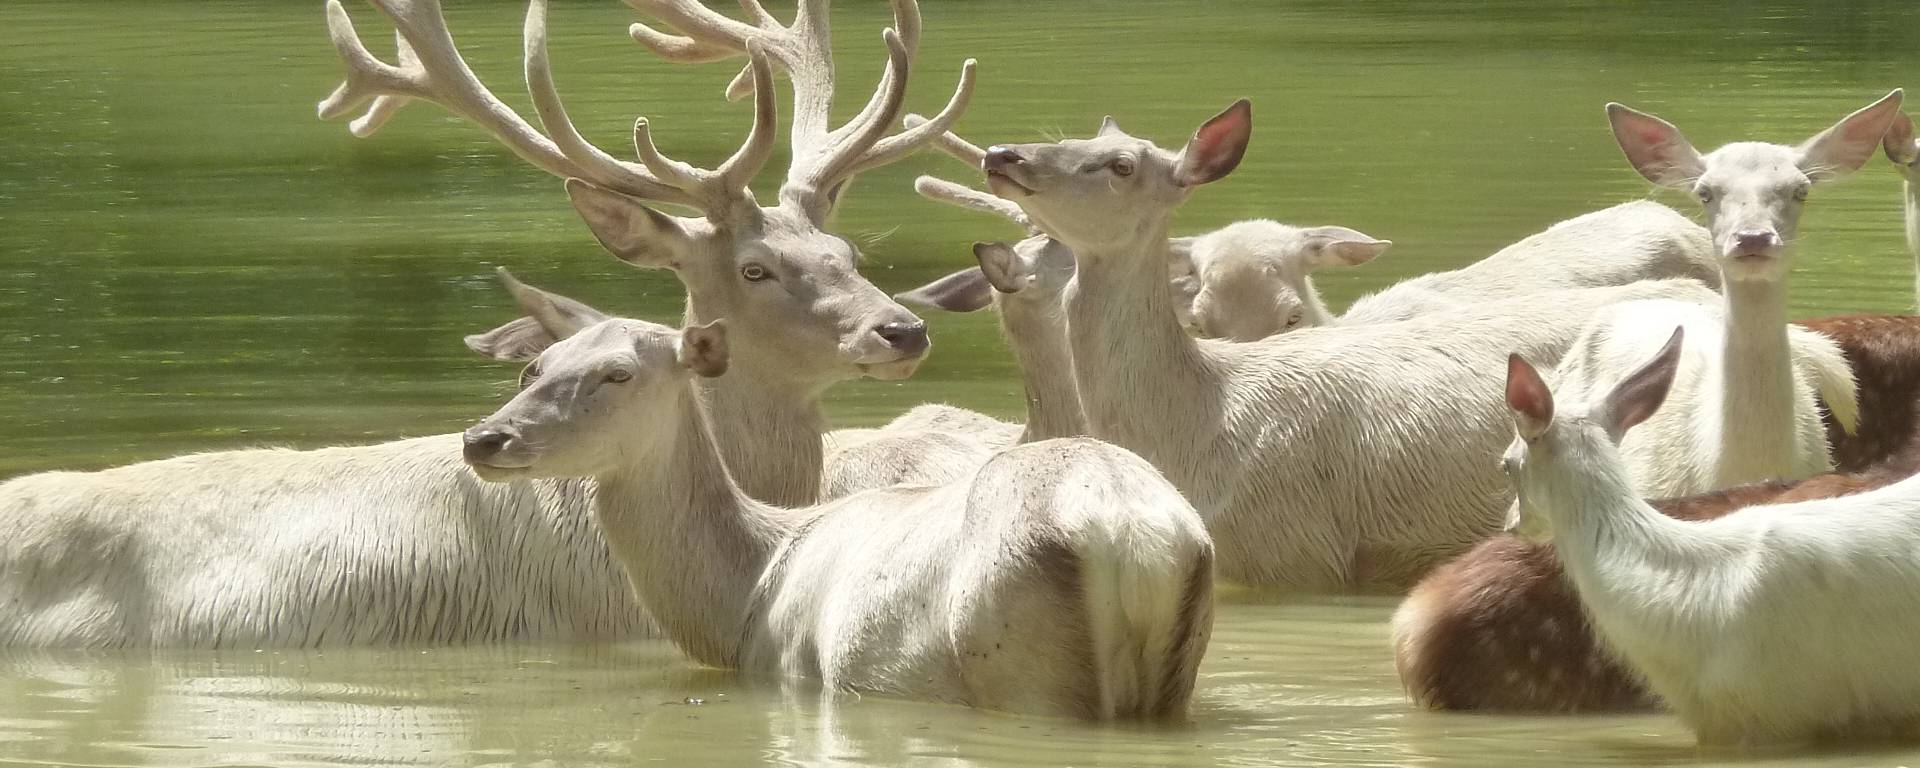 White stags